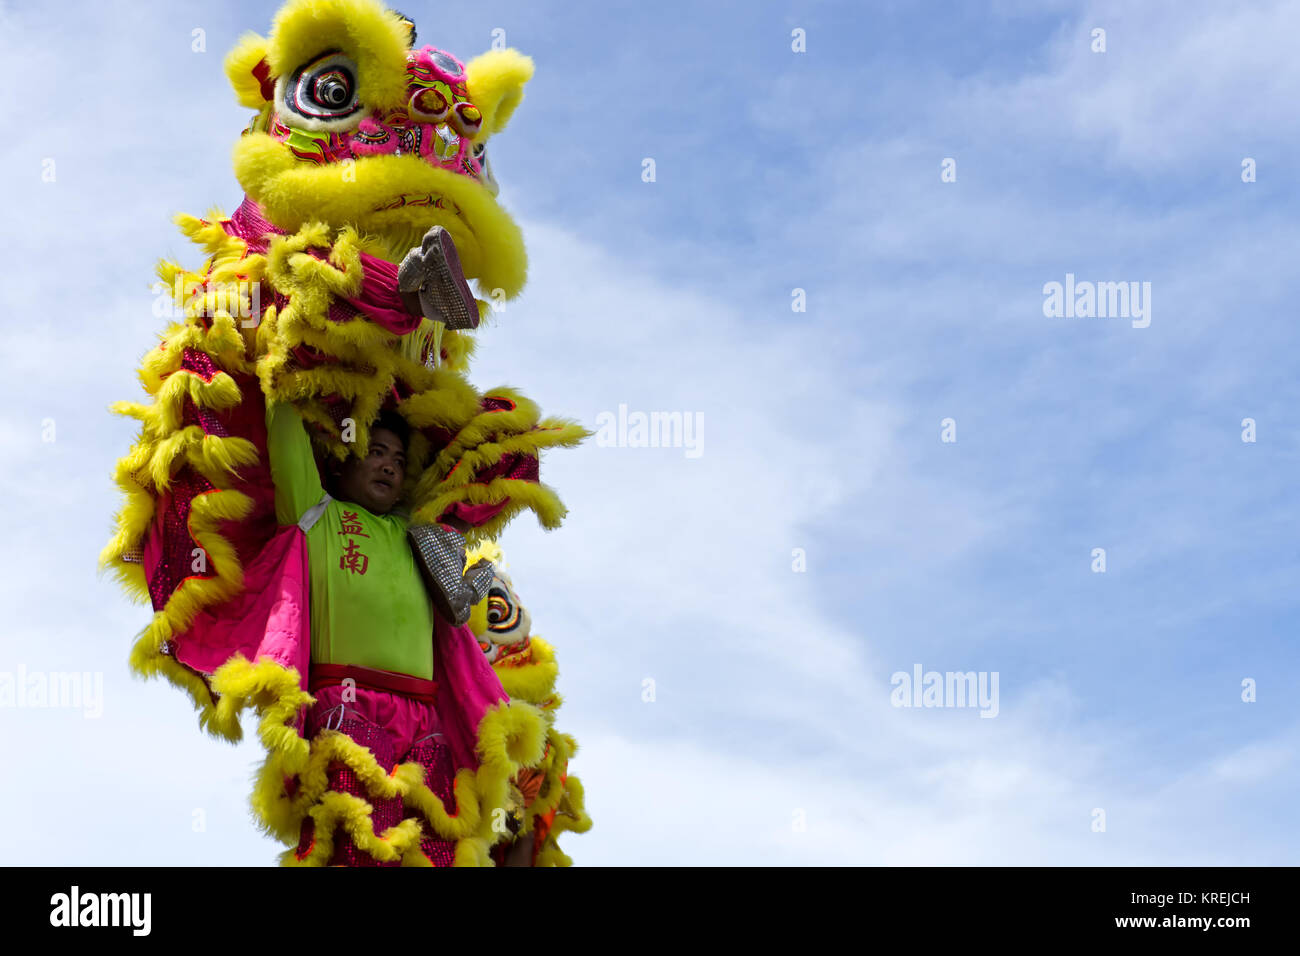 Kota Kinabalu, Malaysia - February 18, 2017: Dancer against blue sky during a dragon dance performance during Chinese - Stock Image